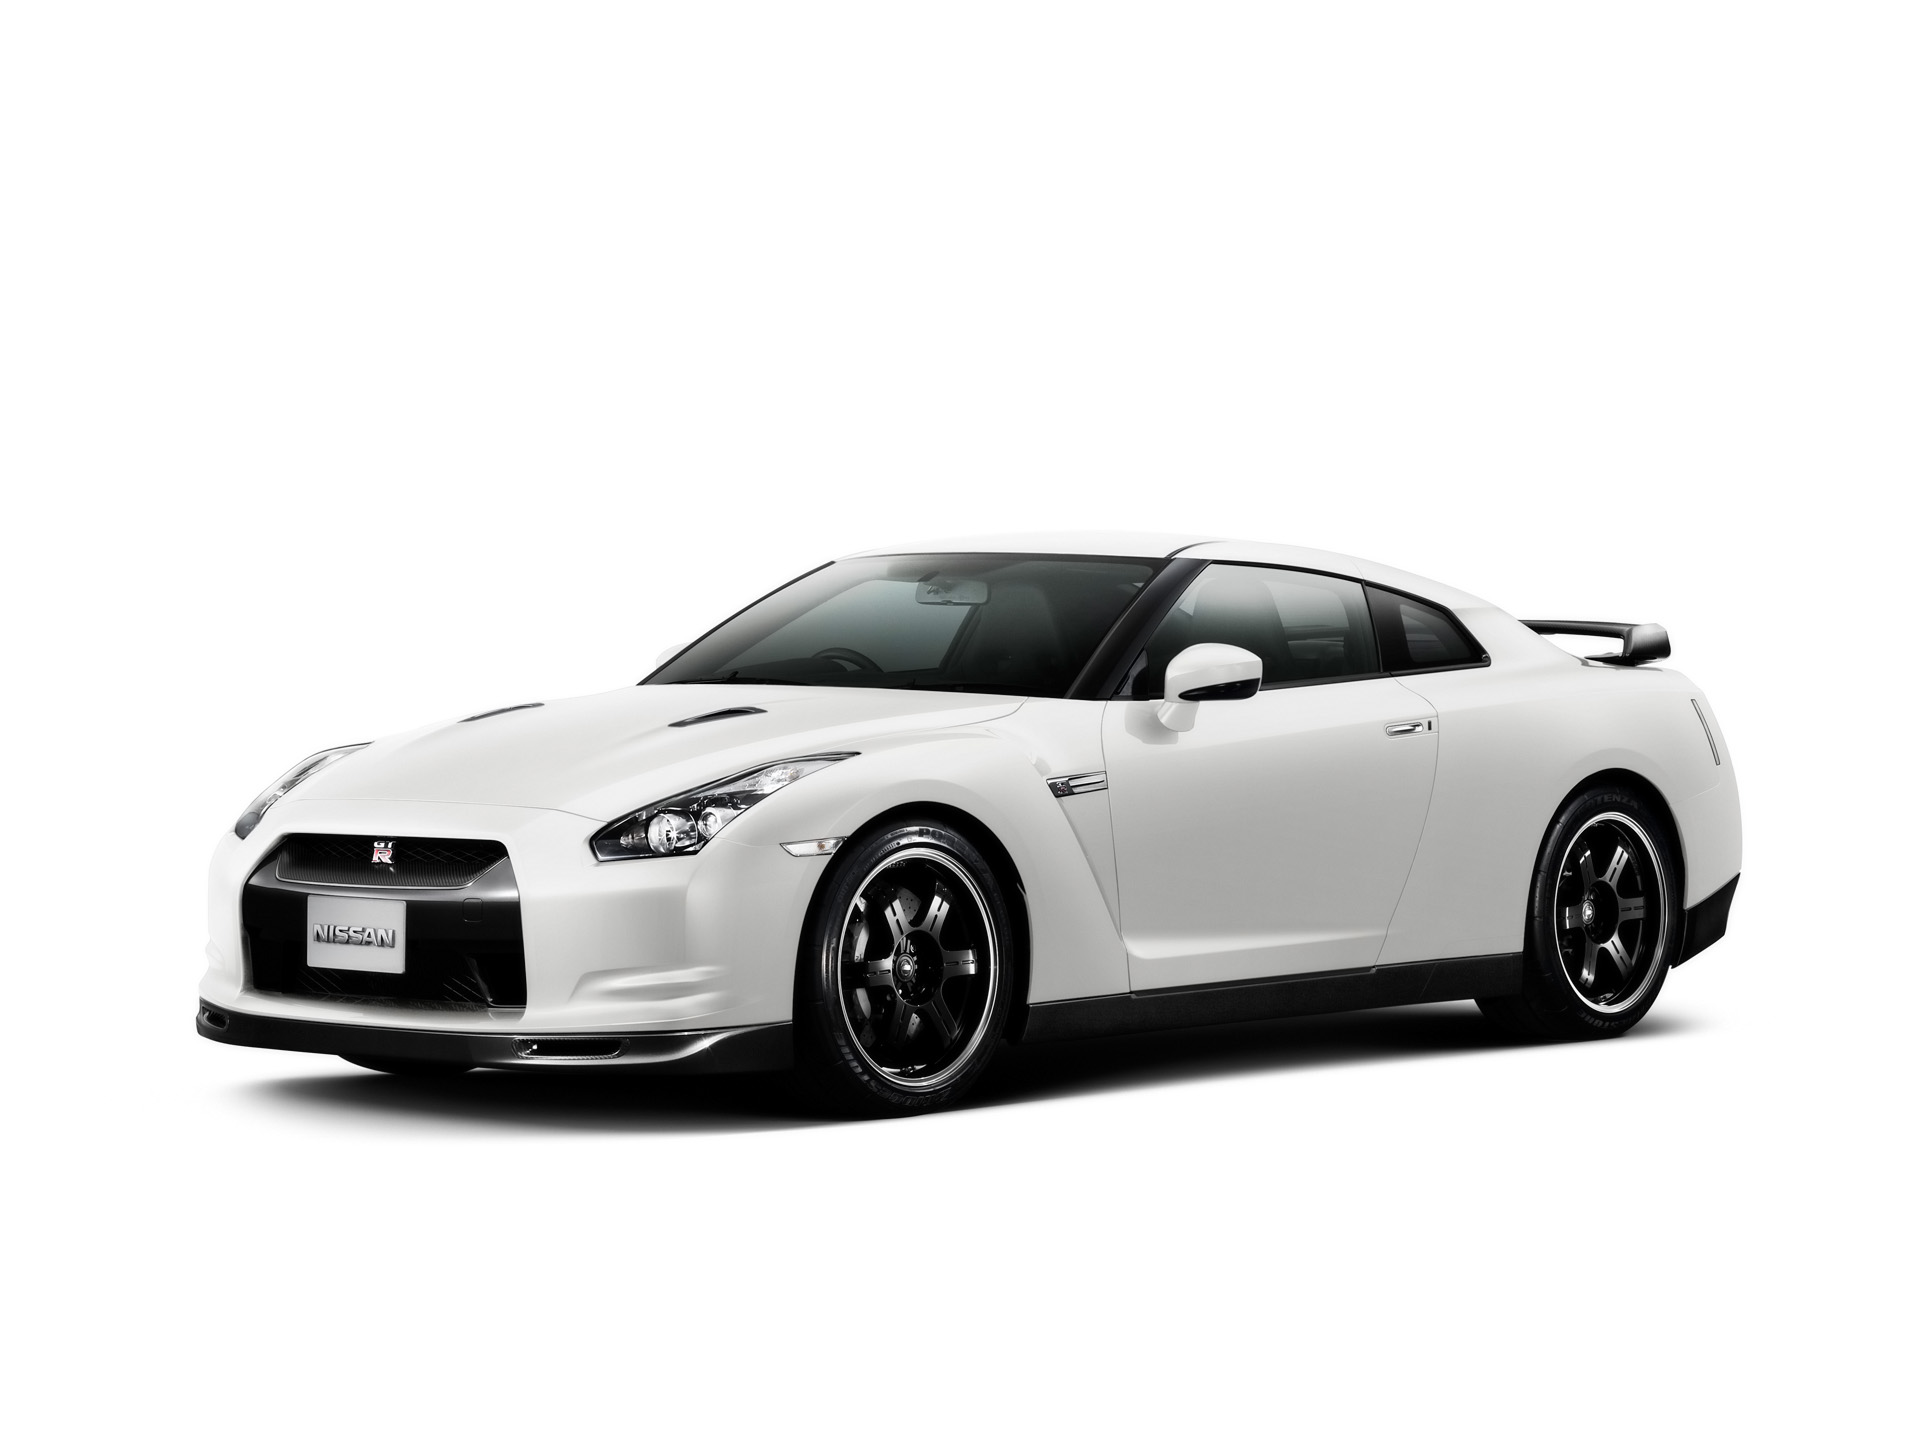 Used 2009 Nissan GT-R Pricing & Features | Edmunds